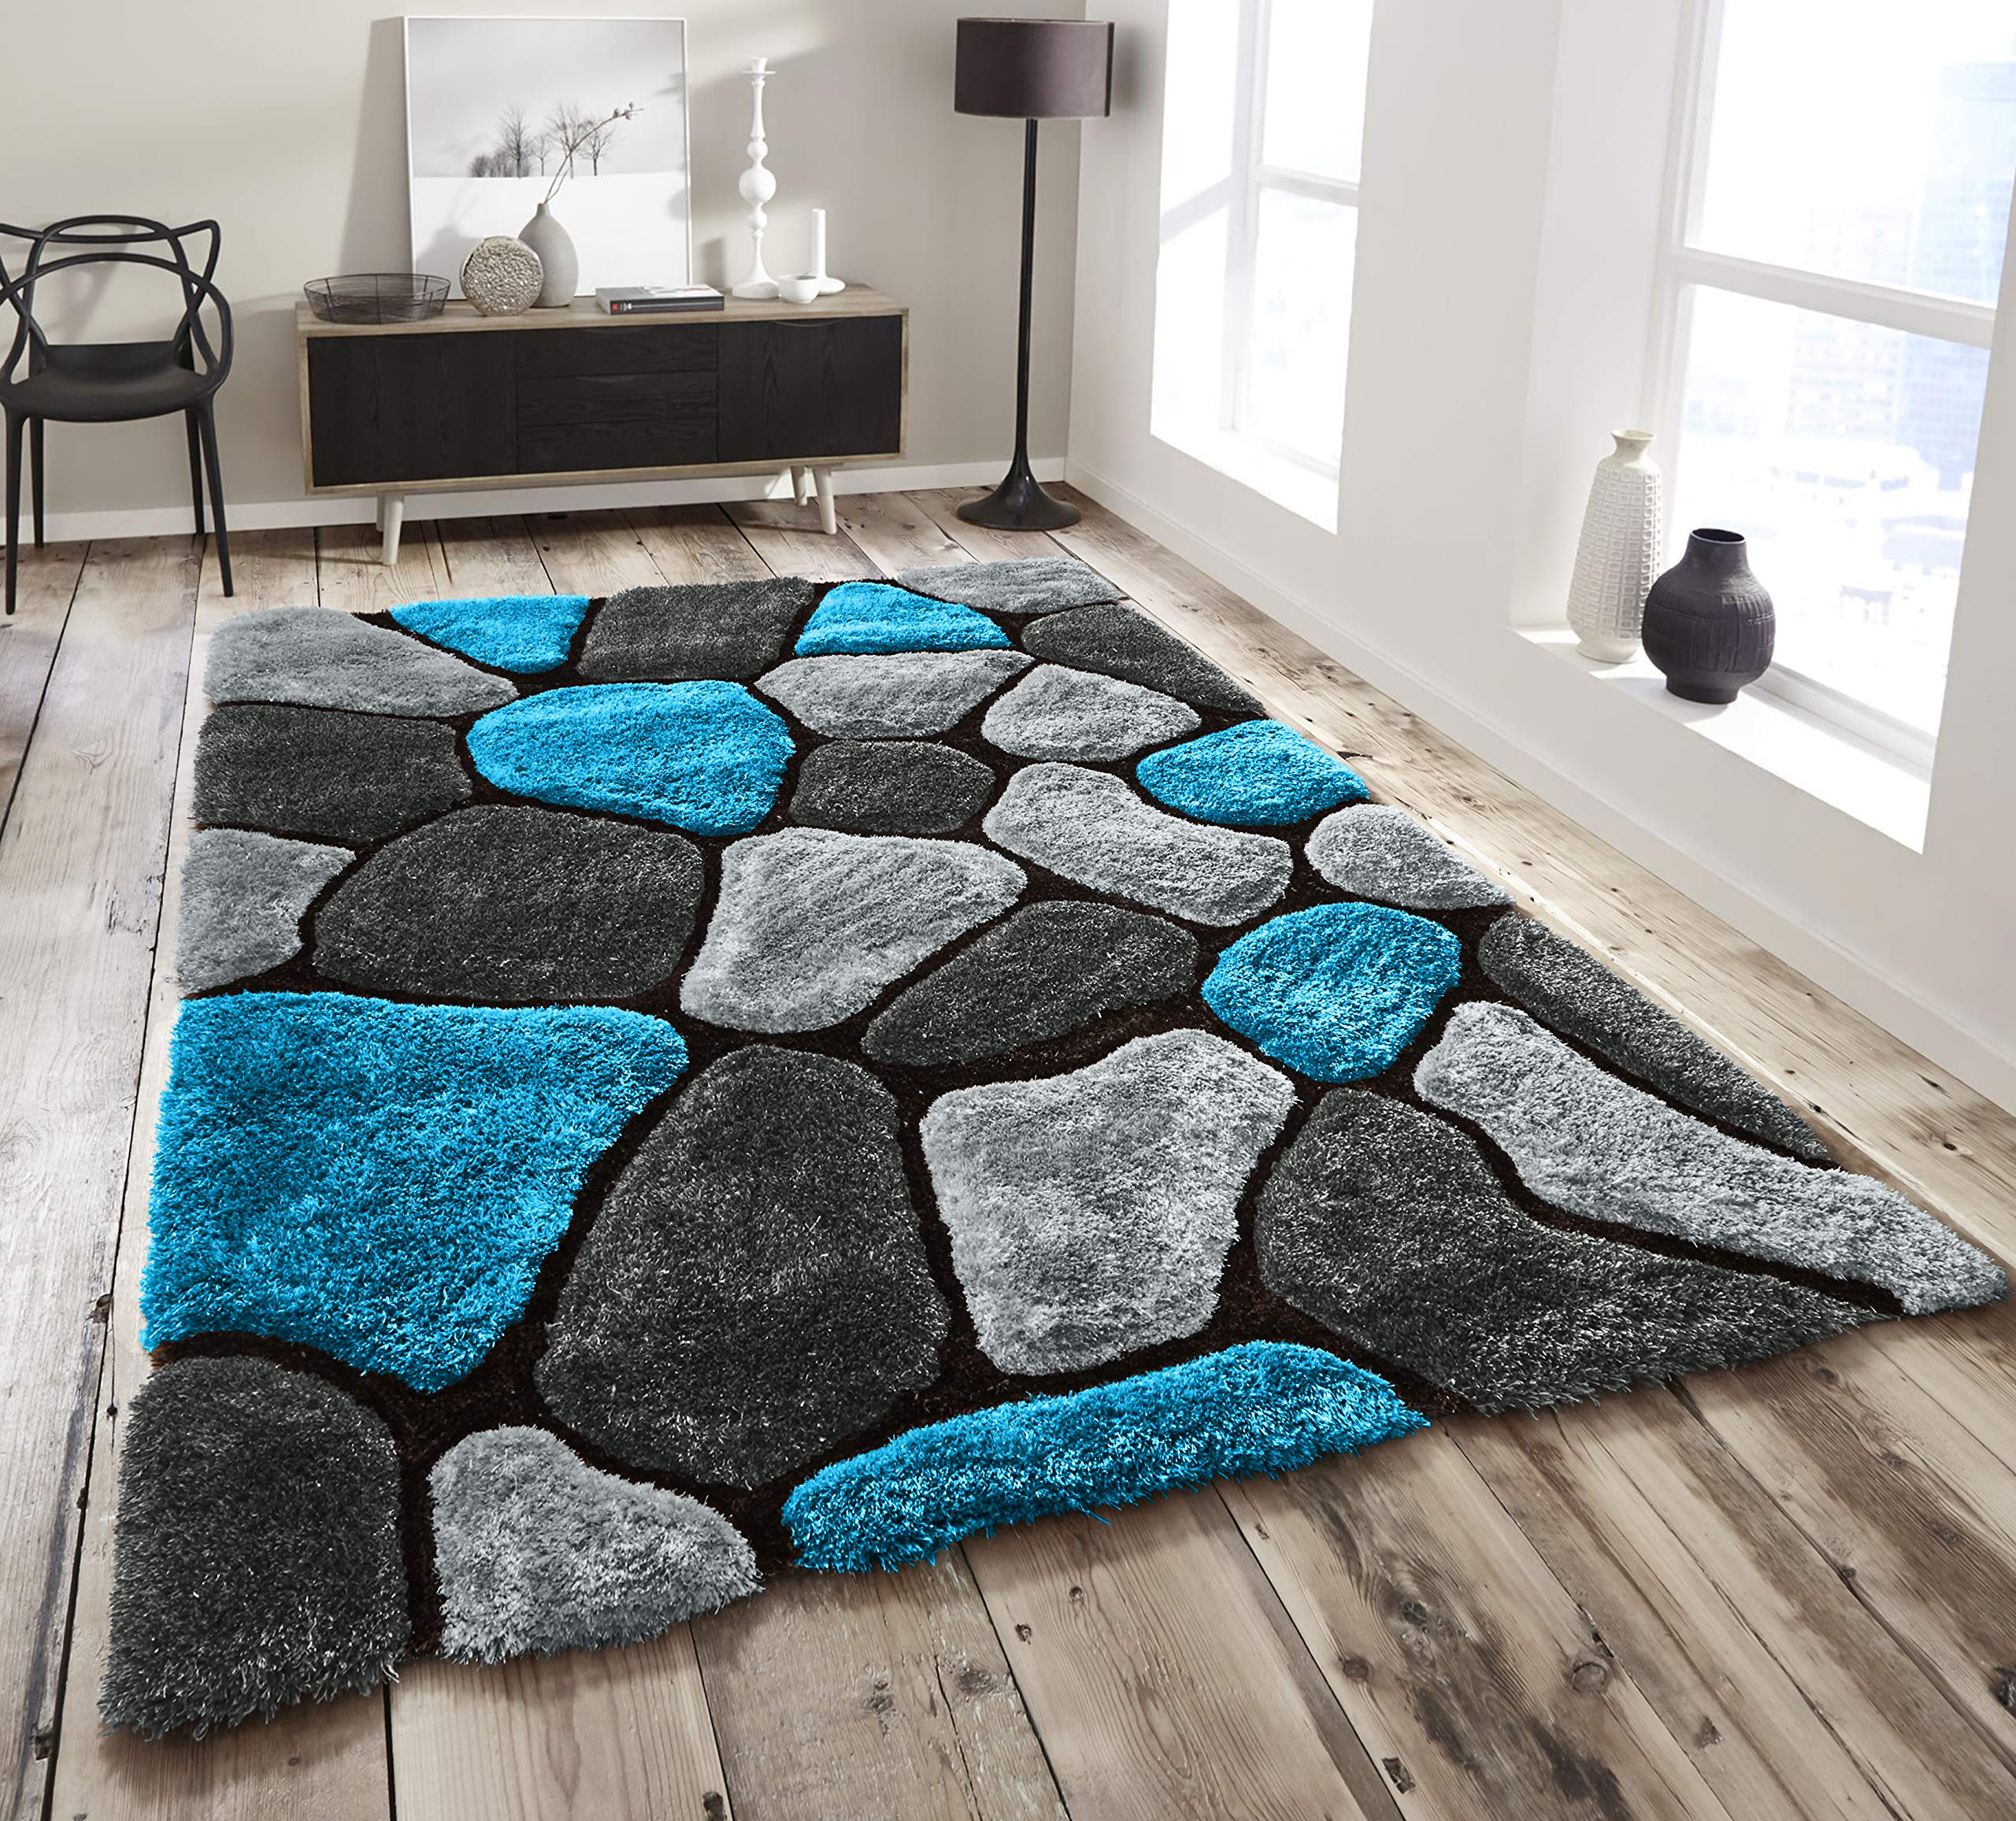 Verge Honeycomb Modern Grey//Blue Shaggy Rugs 3D Effect Textured Pile 120X170CM